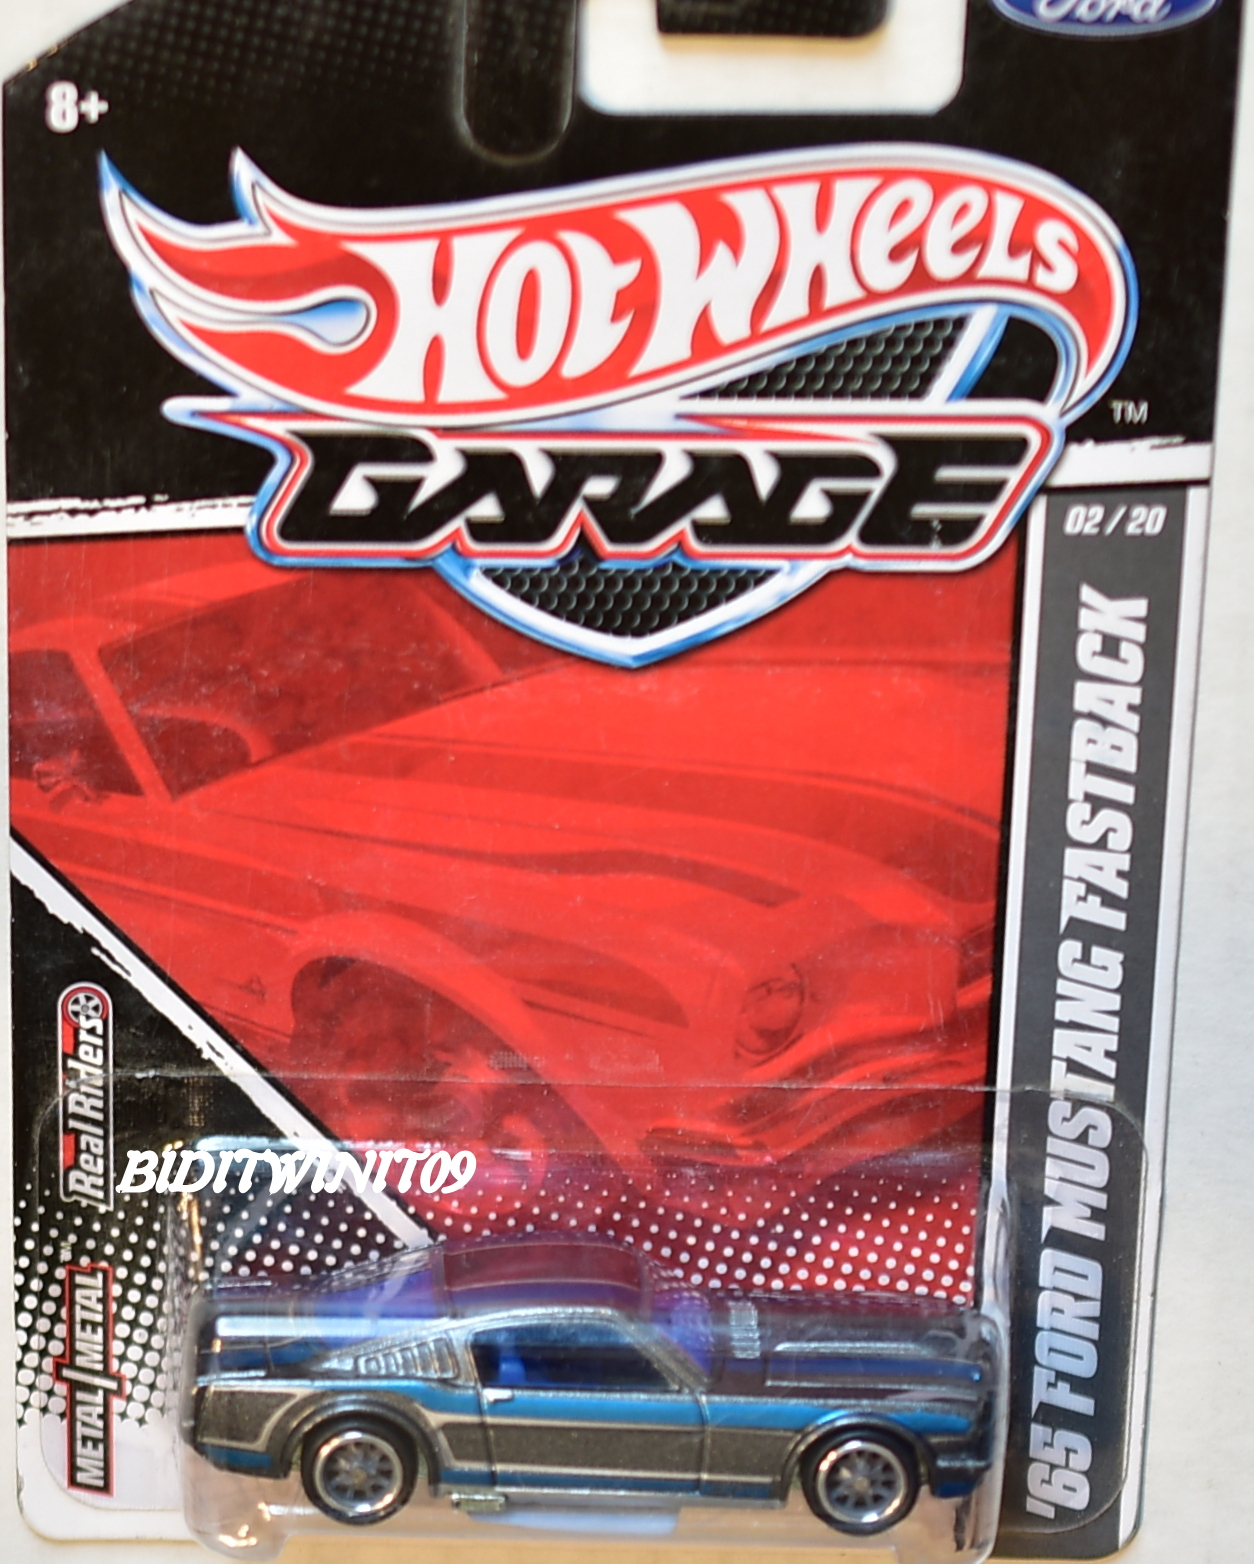 HOT WHEELS GARAGE '65 FORD MUSTANG FASTBACK #02/20